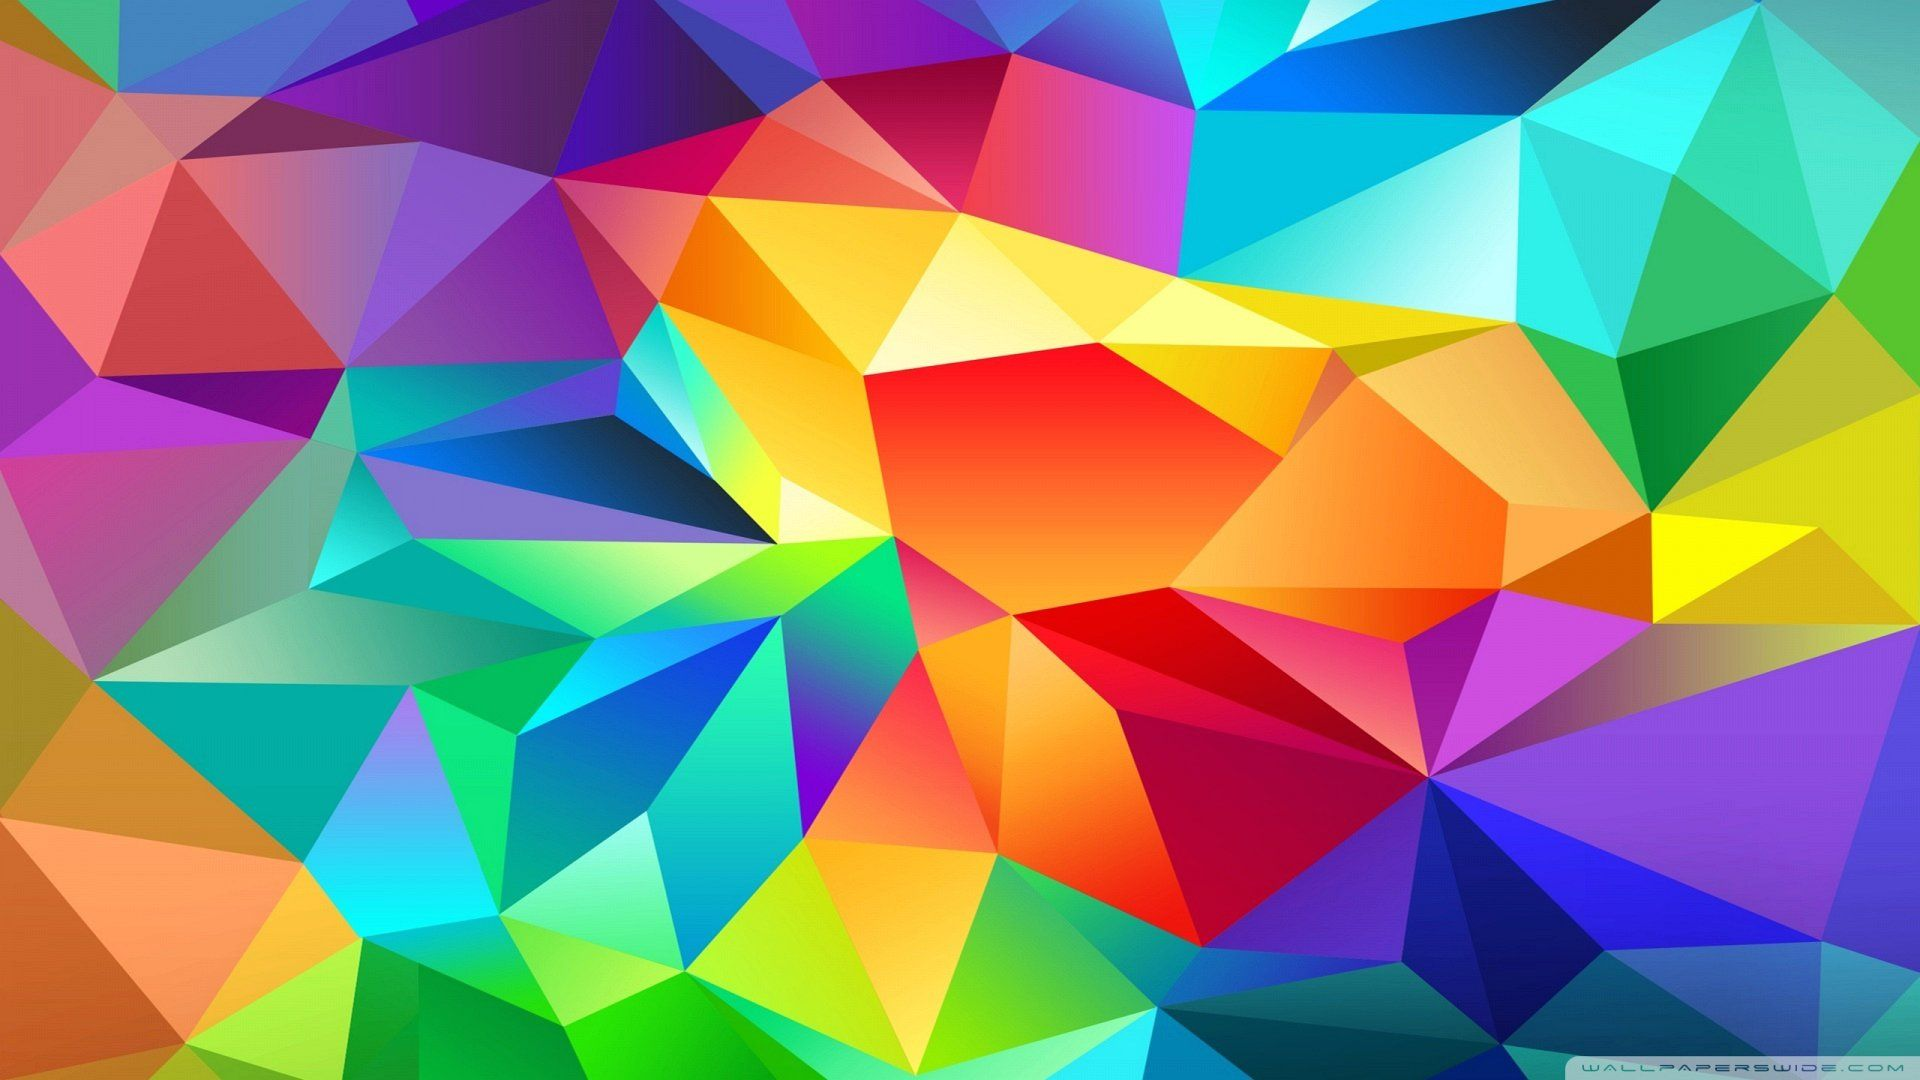 abstract polygonal colorful background - photo #21